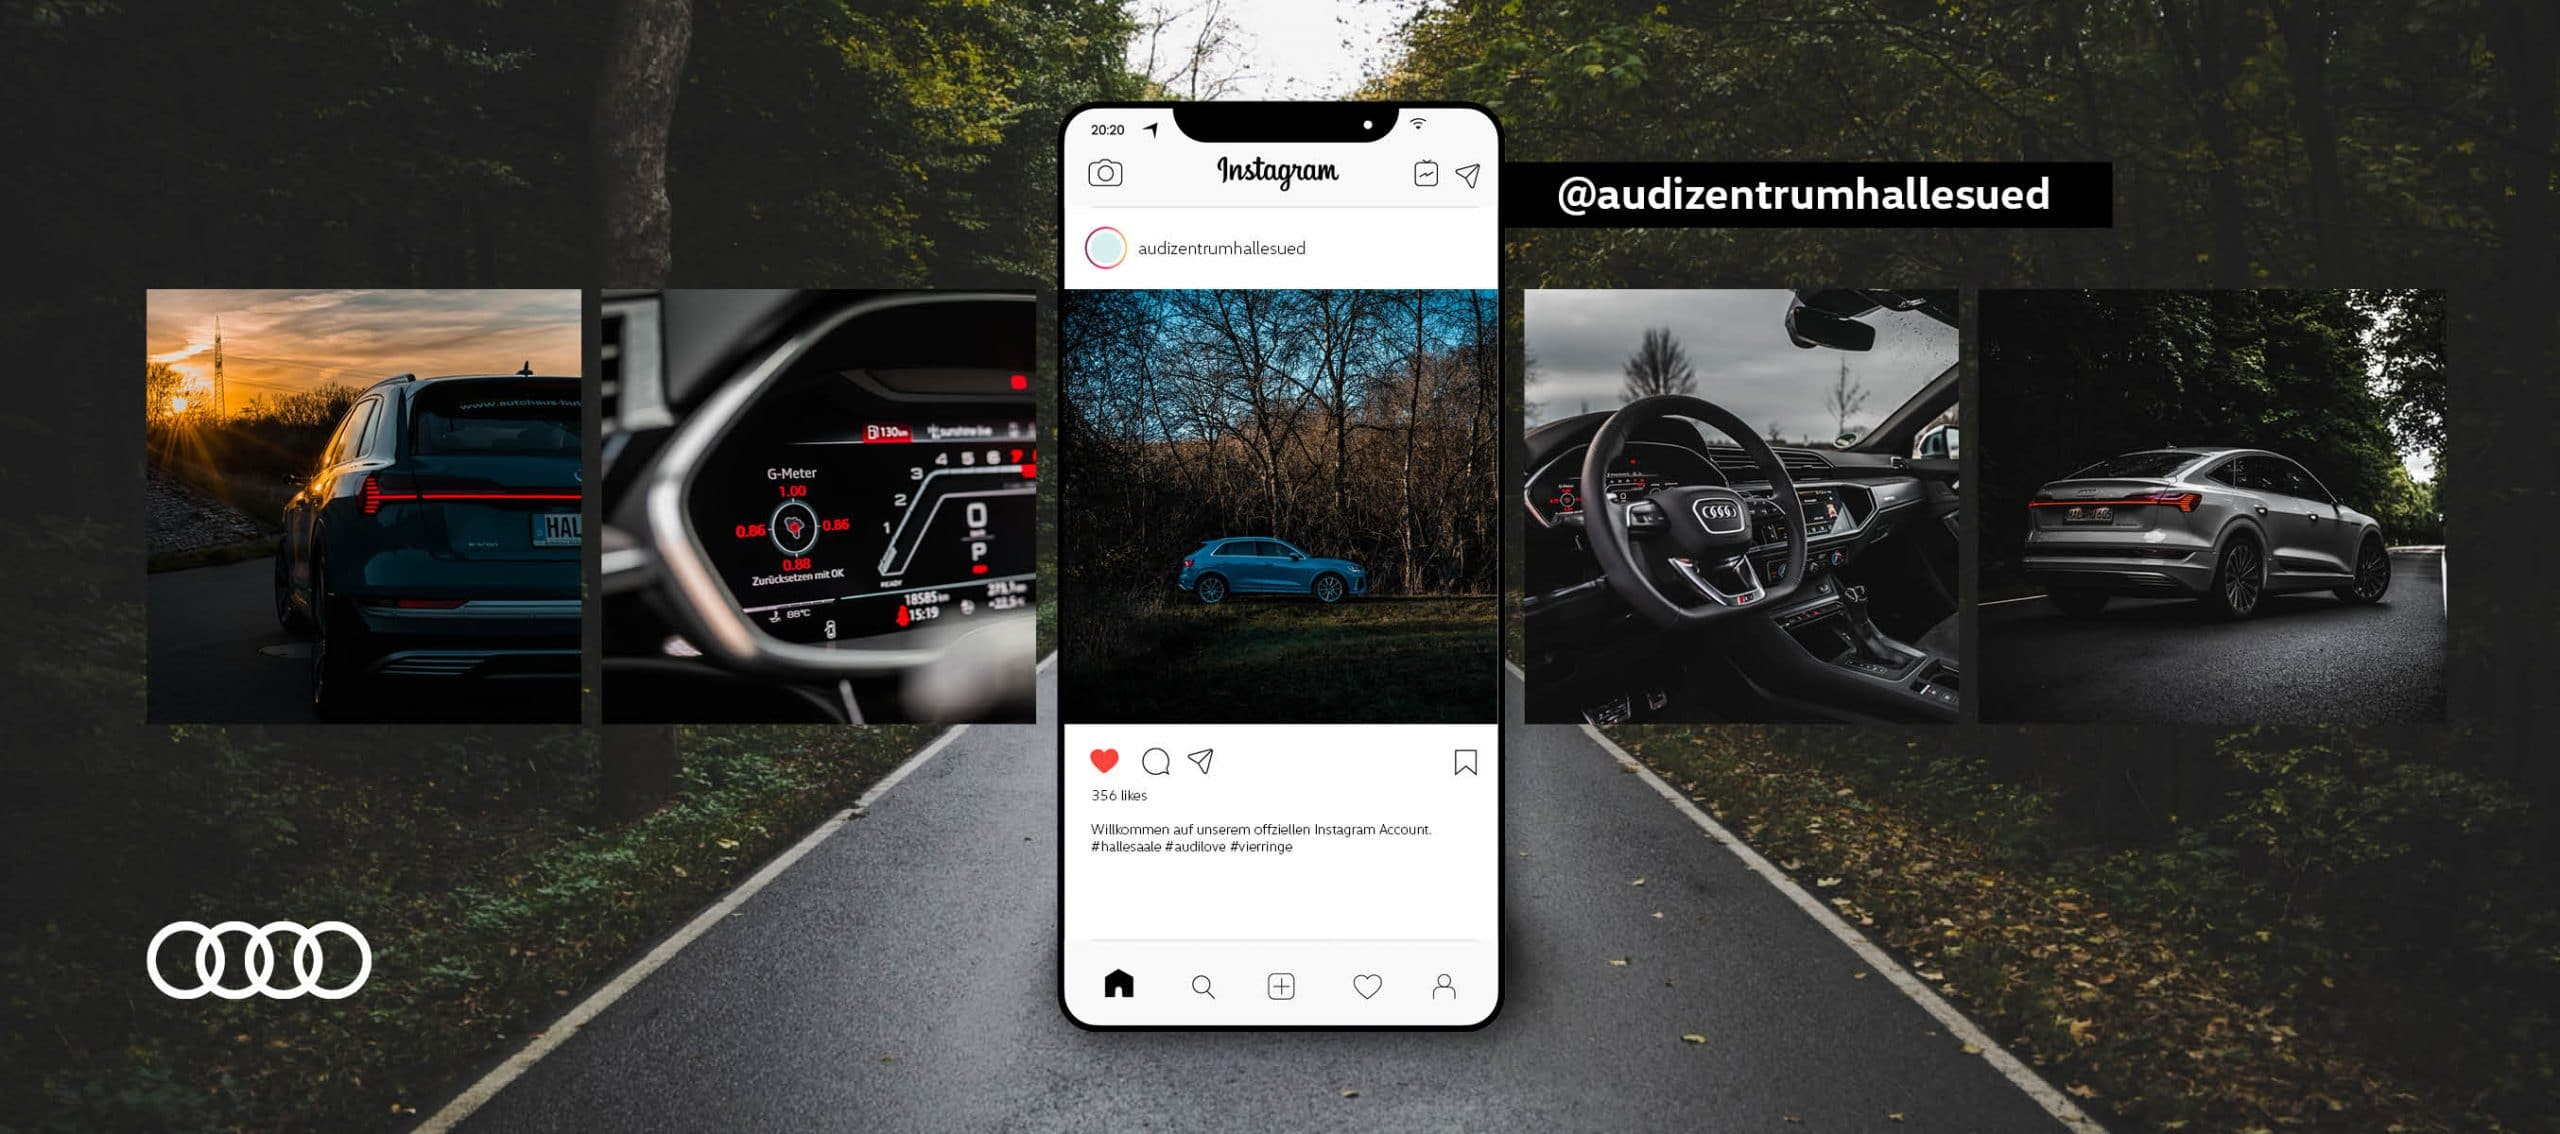 Audizentrum Instagram